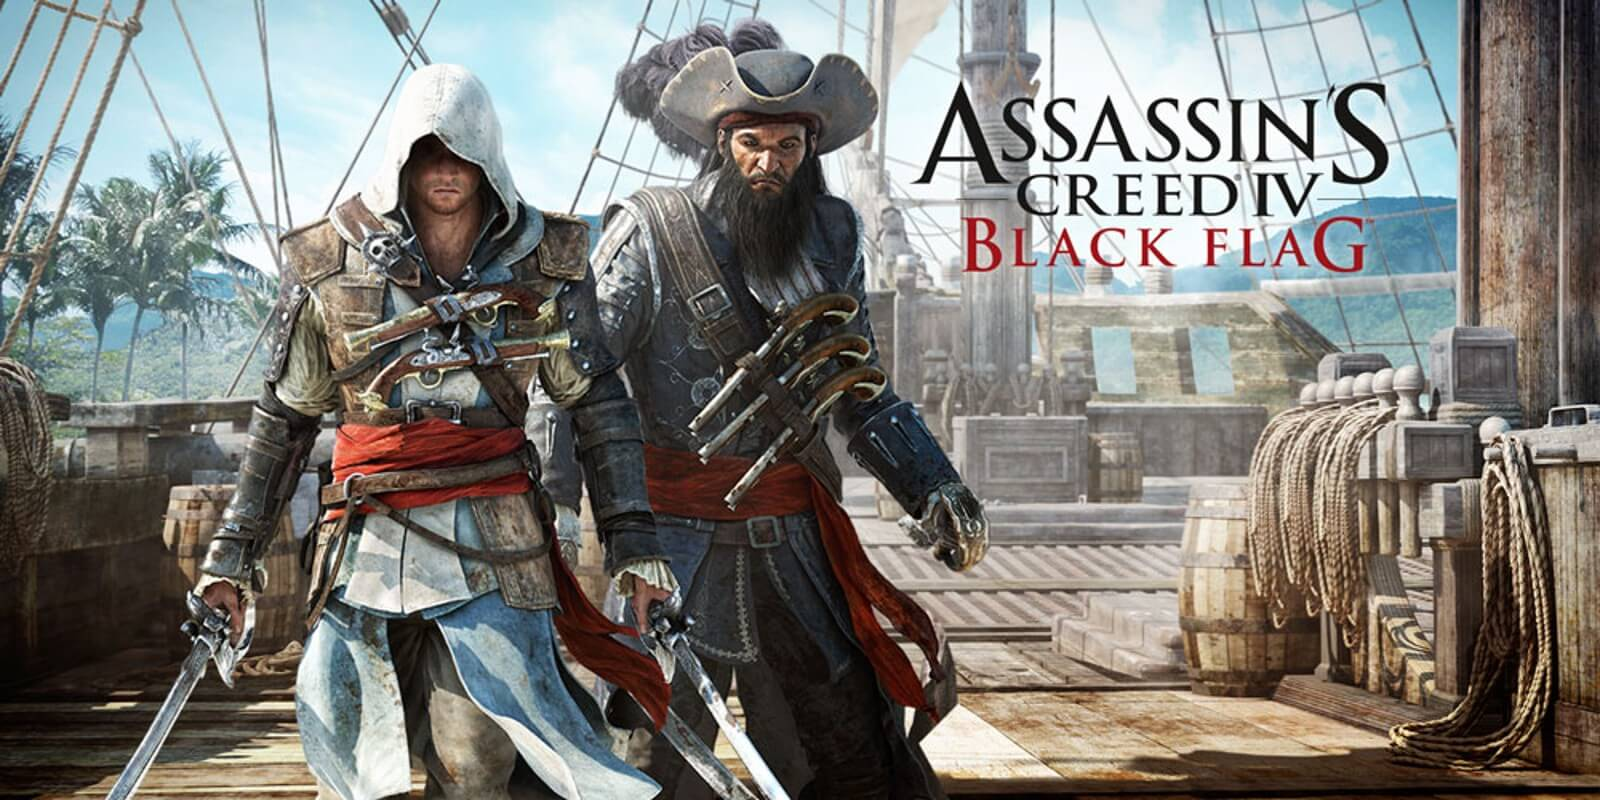 Suculenta oferta de Assassin's Creed IV Black Flag para Xbox One